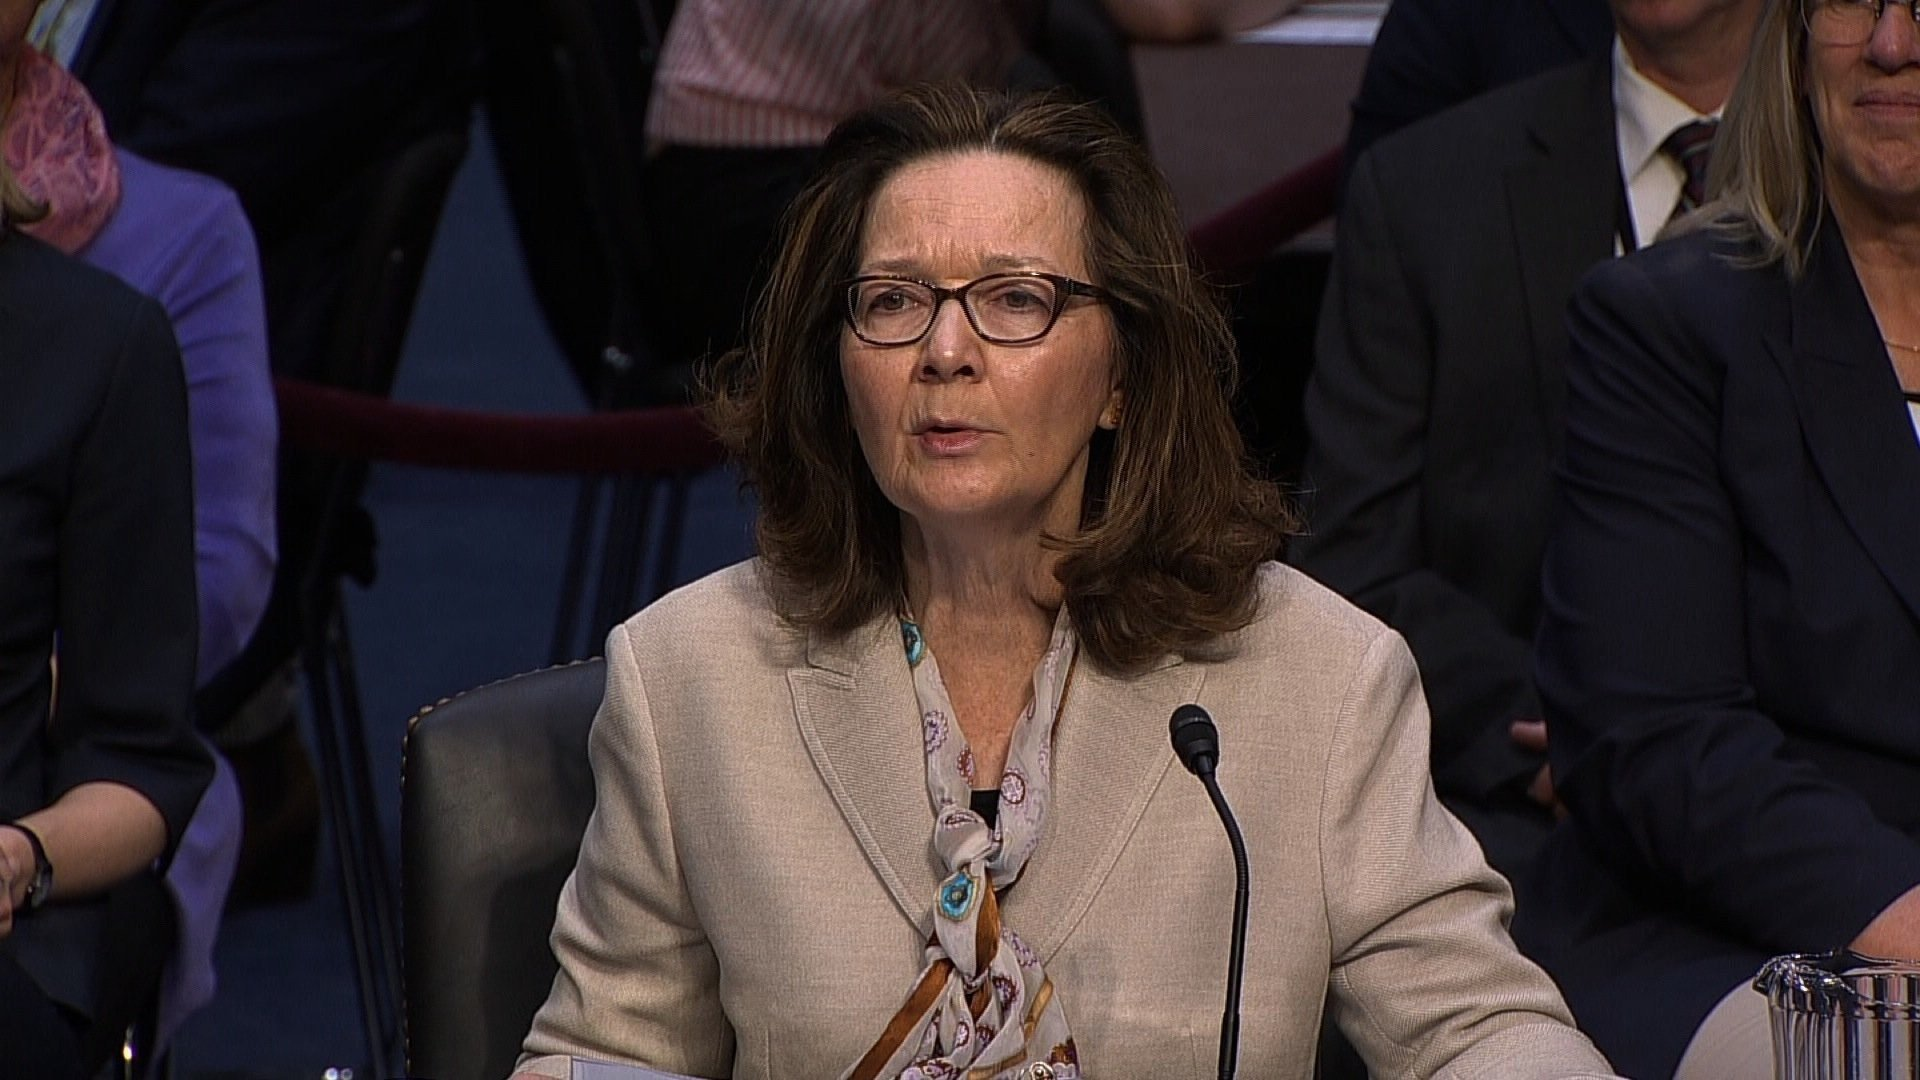 The Senate Intelligence Committee will vote behind closed doors Wednesday to advance Gina Haspel's nomination as President Donald Trump's CIA director pick. She looks all but assured to win Senate confirmation.